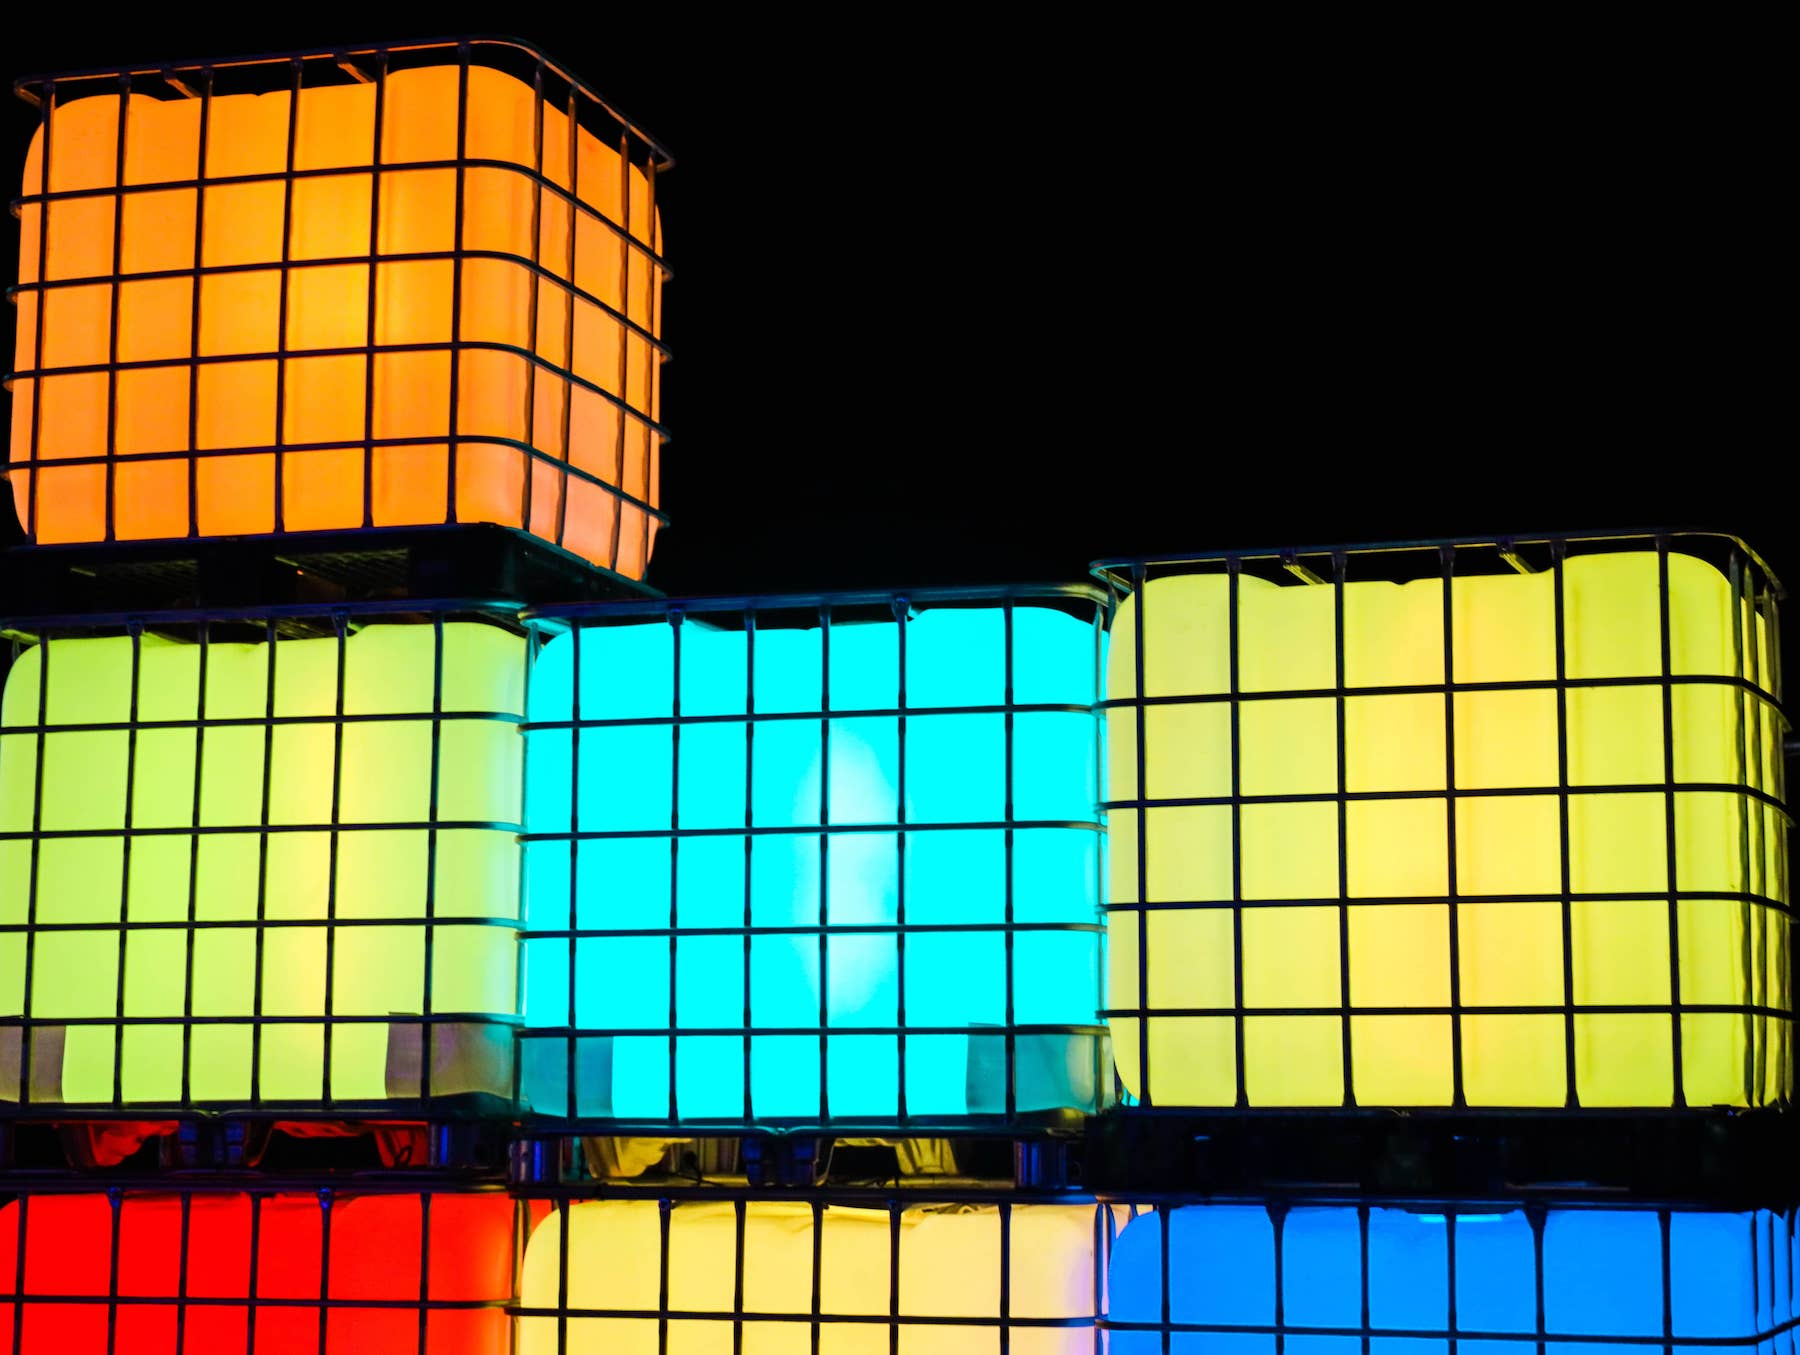 Large lighted cubes in cages